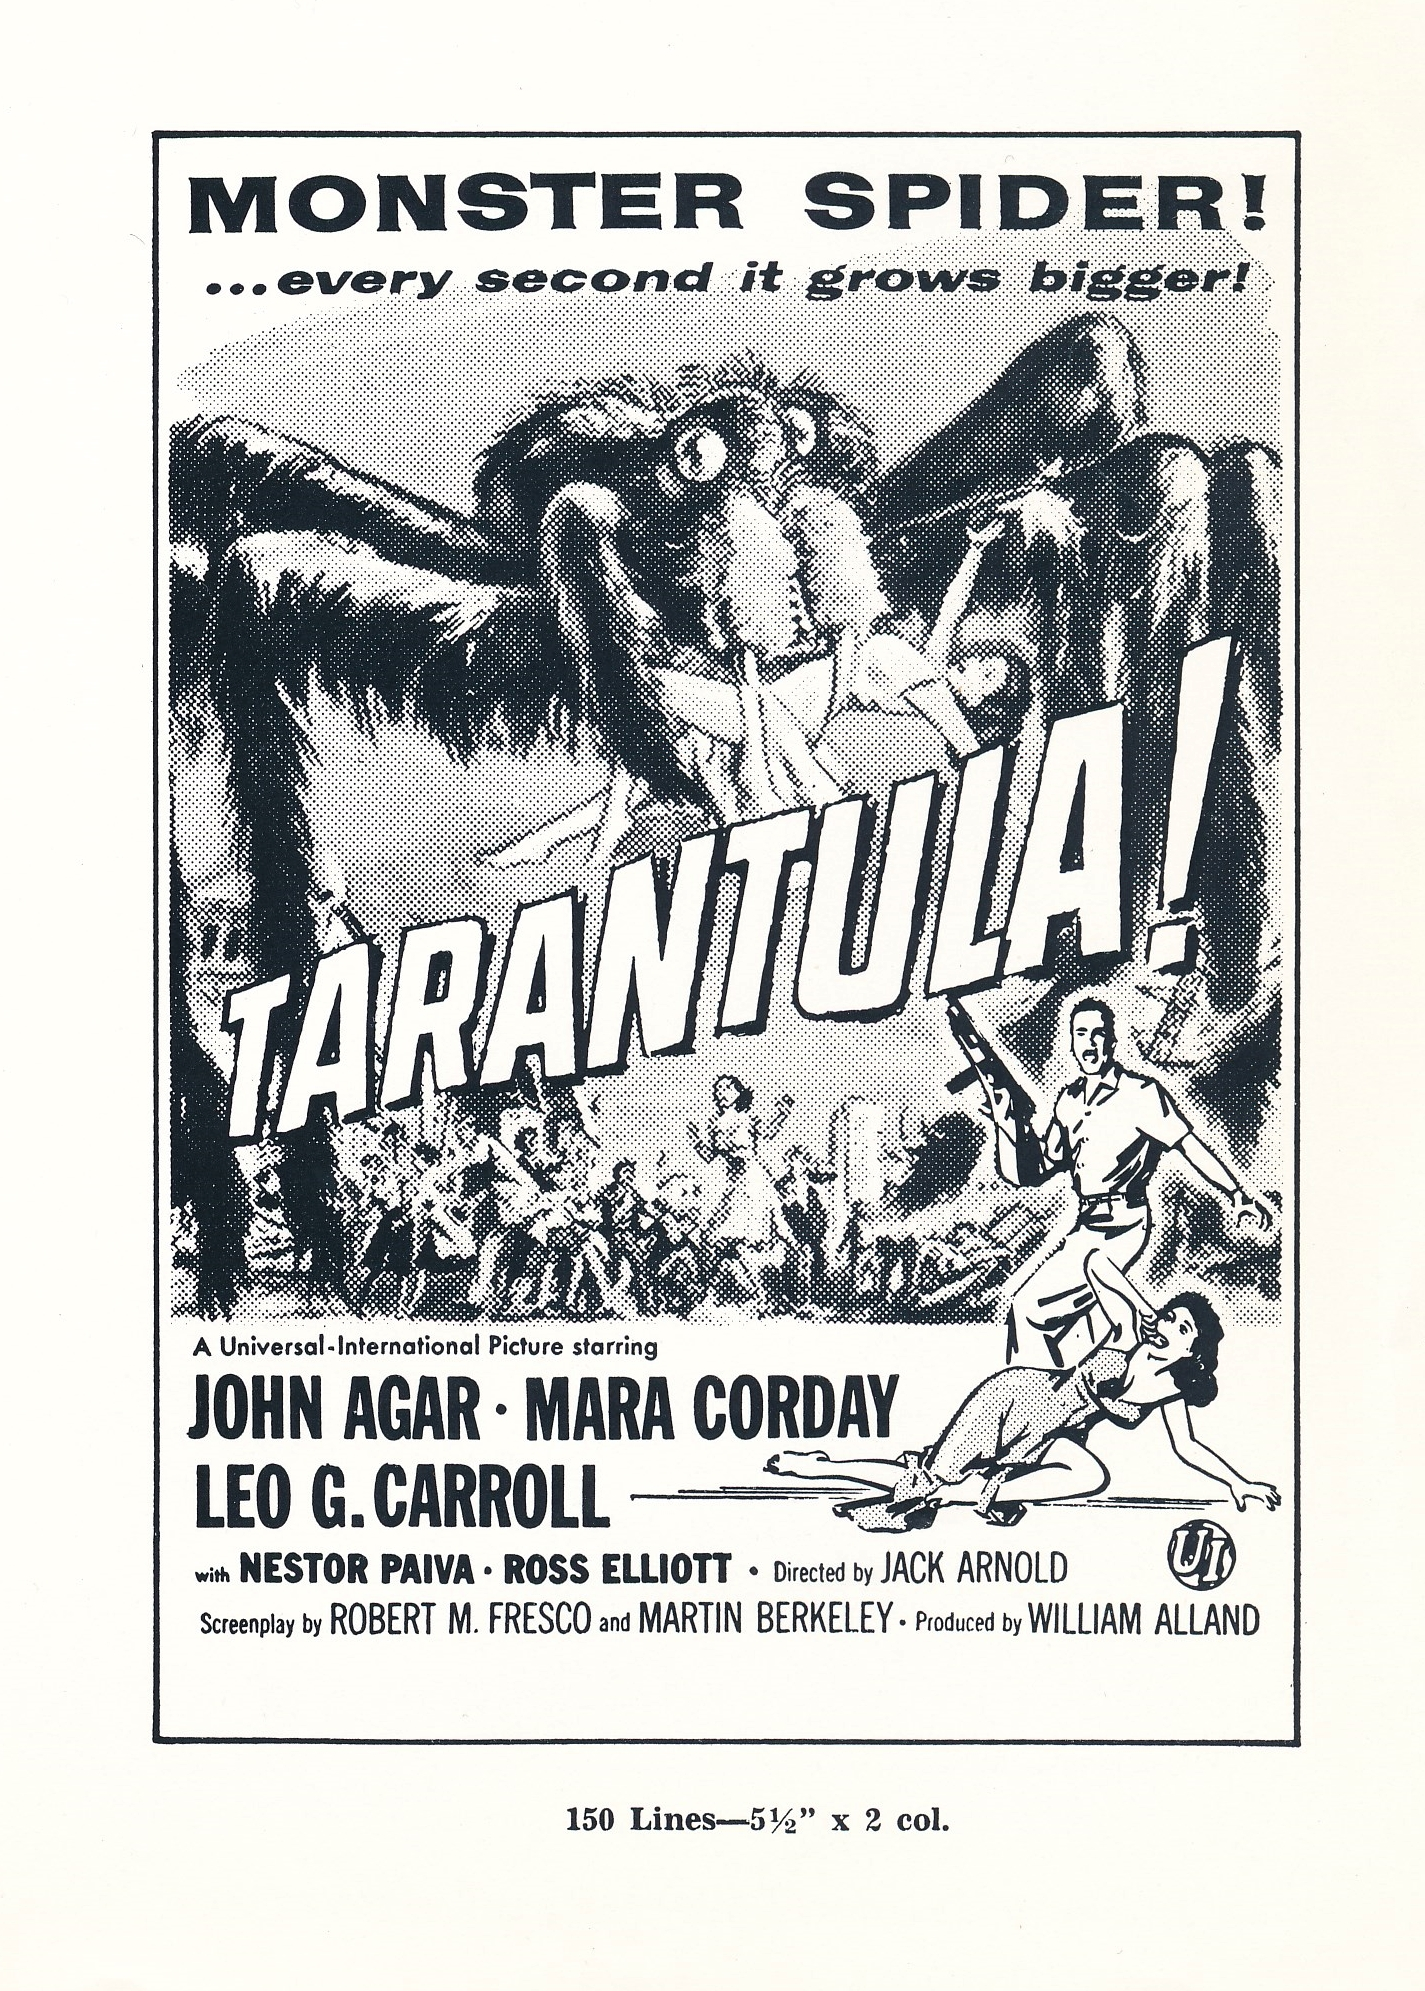 Universal's 1955 sci-fi film,Tarantula was one of the better entries in the studio's 'giant monster' cycle. Not too many stills of the title creature were released, so here's the best we could do. Anyway, the ad art is way more exciting than the actual finished product! Isn't that usually the case!